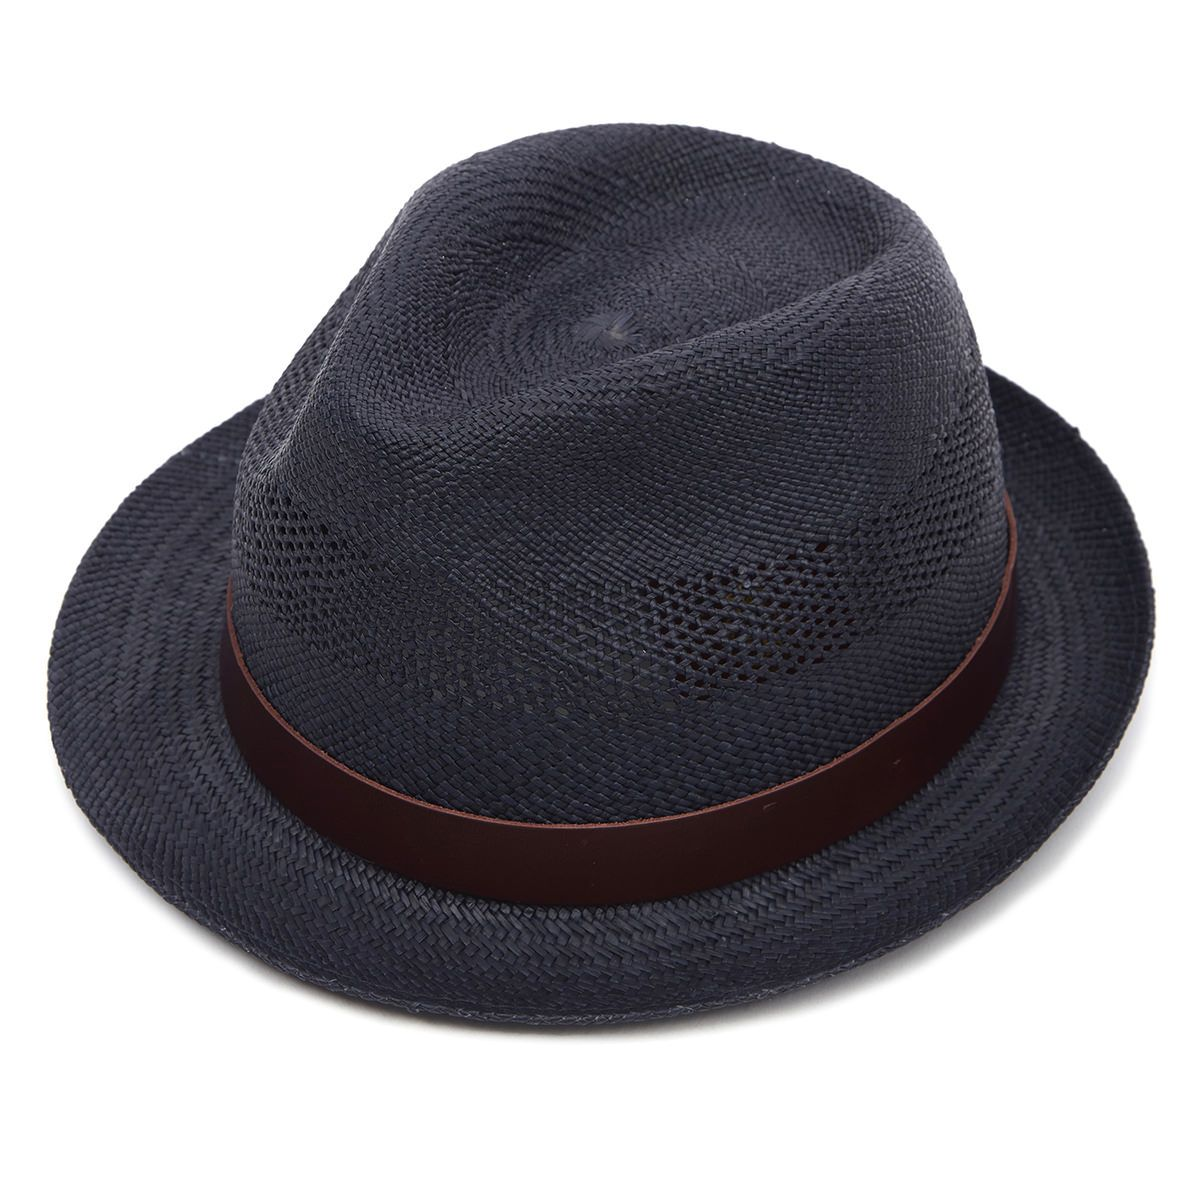 Carnaby Trilby Panama Hat - Navy Perforated 56